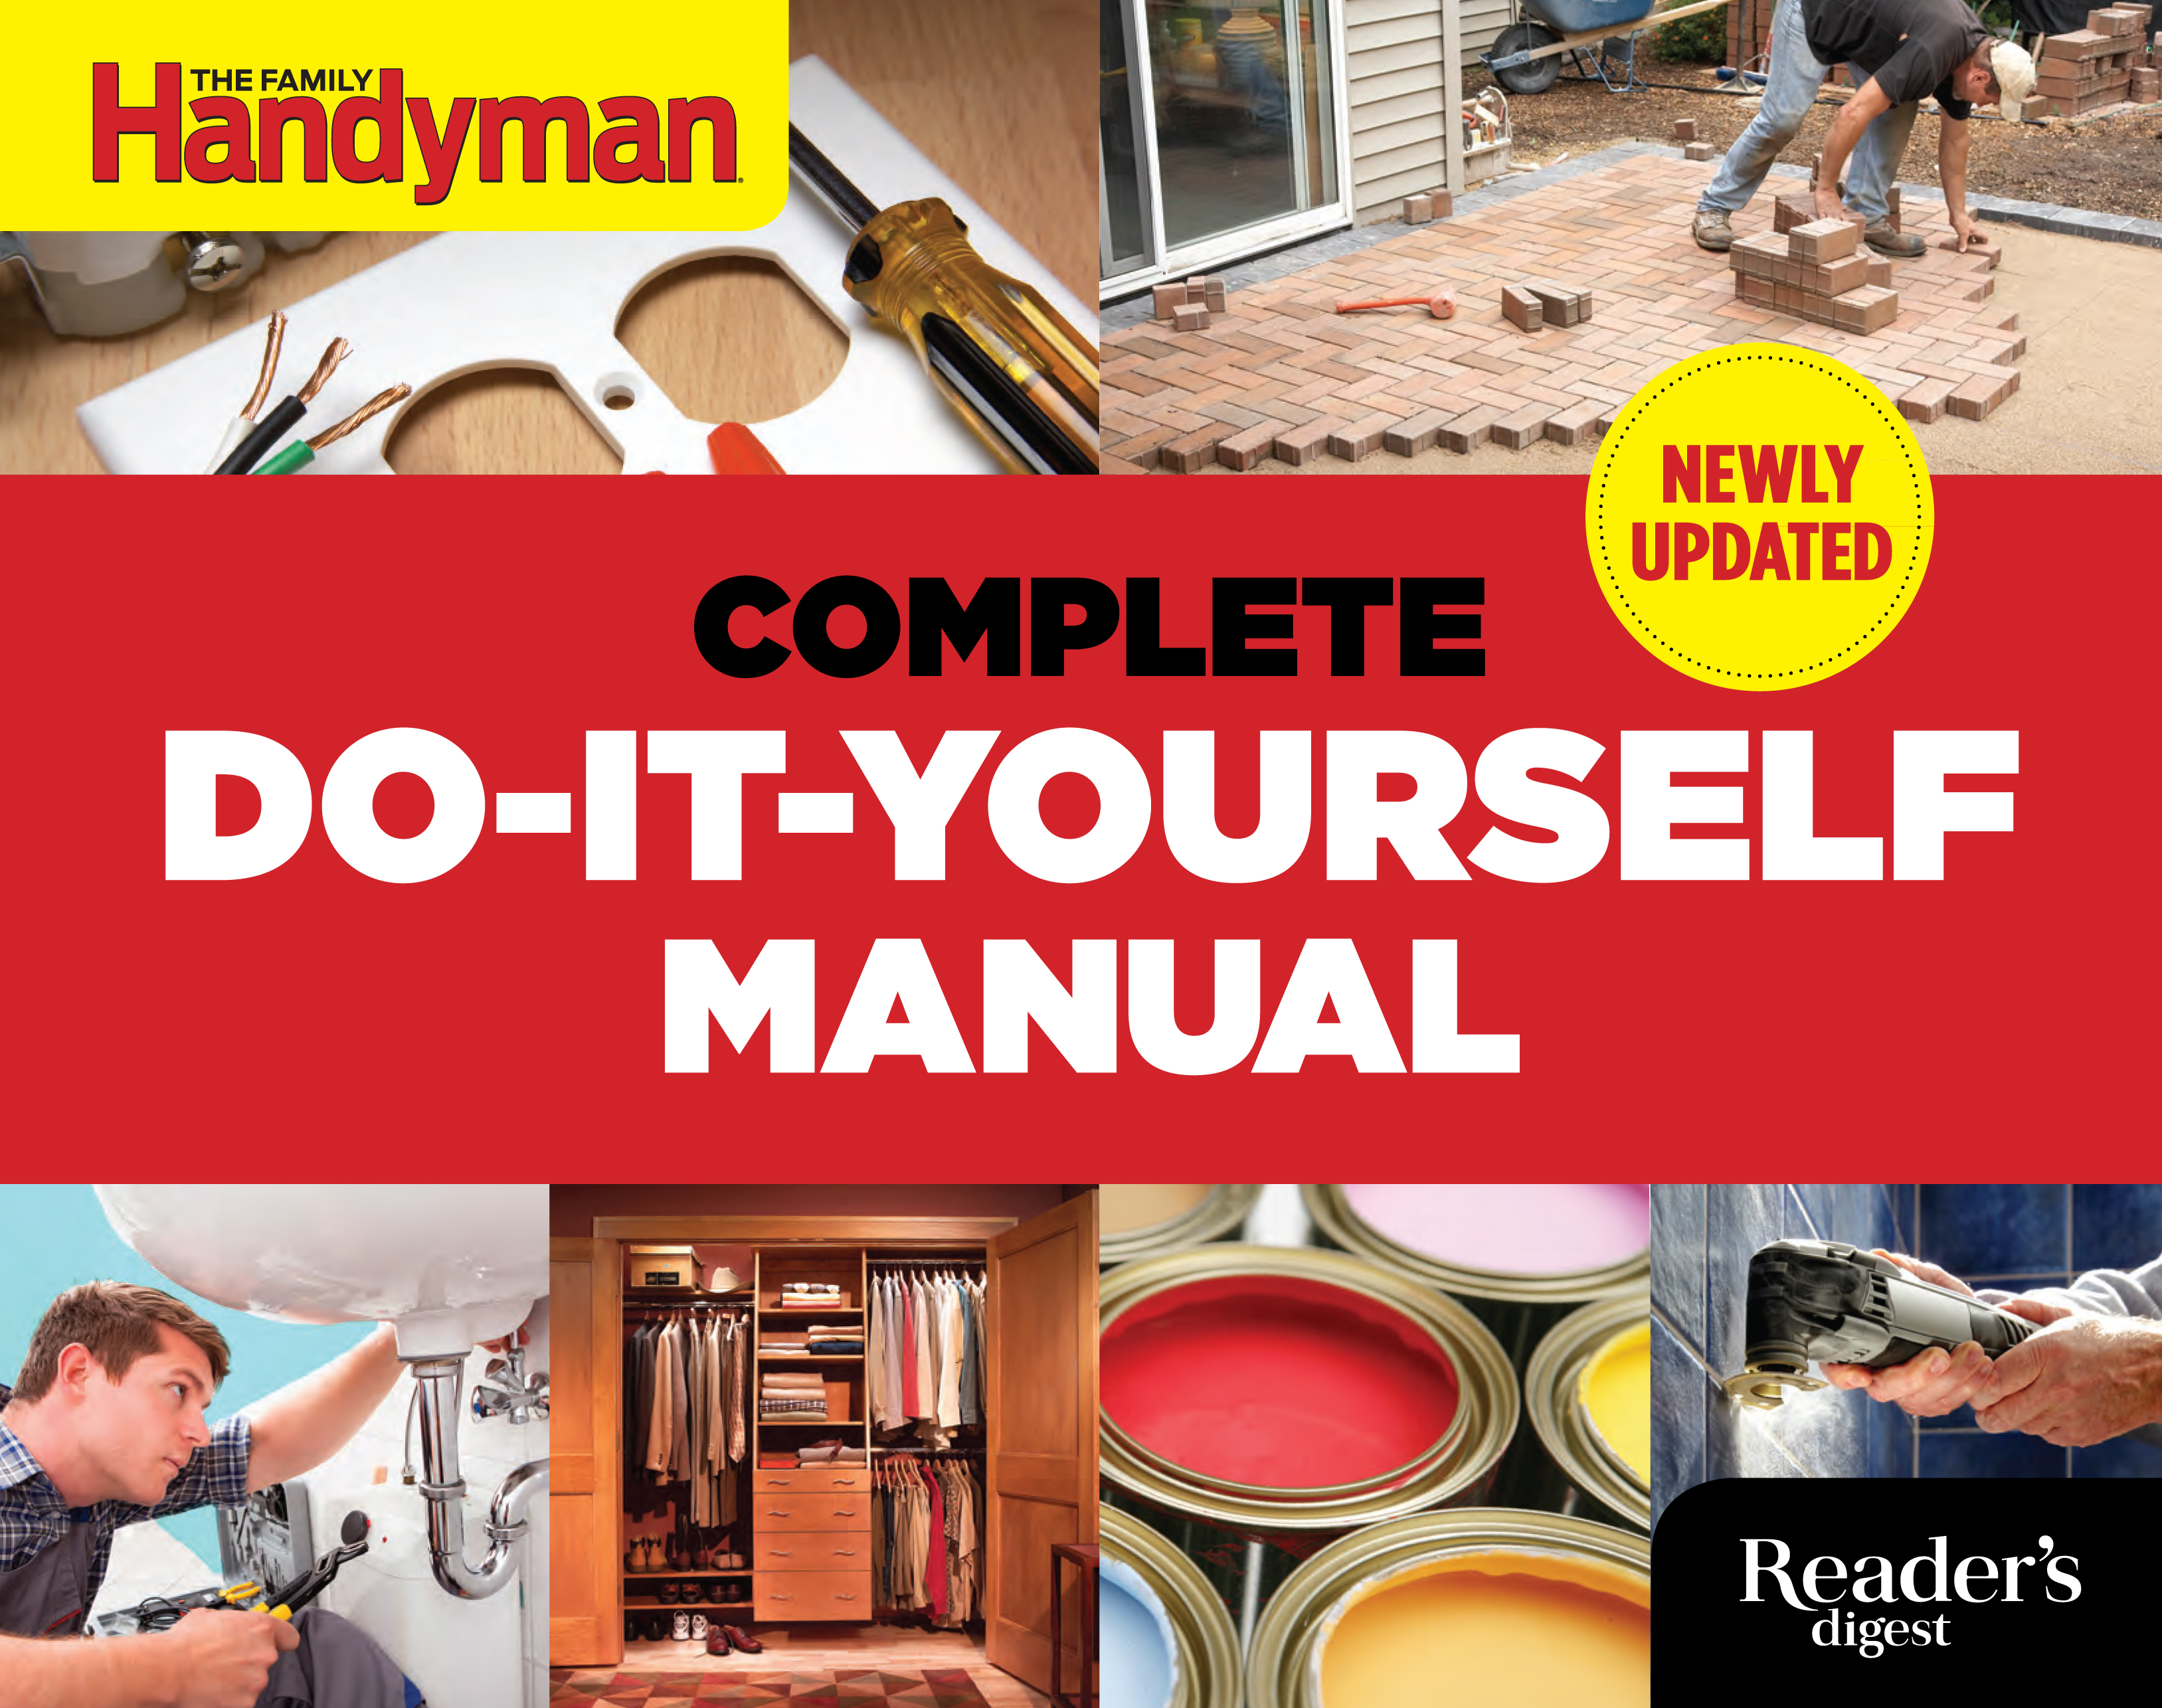 The complete do it yourself manual newly updated book by editors 9781621452010 hr the complete do it yourself solutioingenieria Image collections